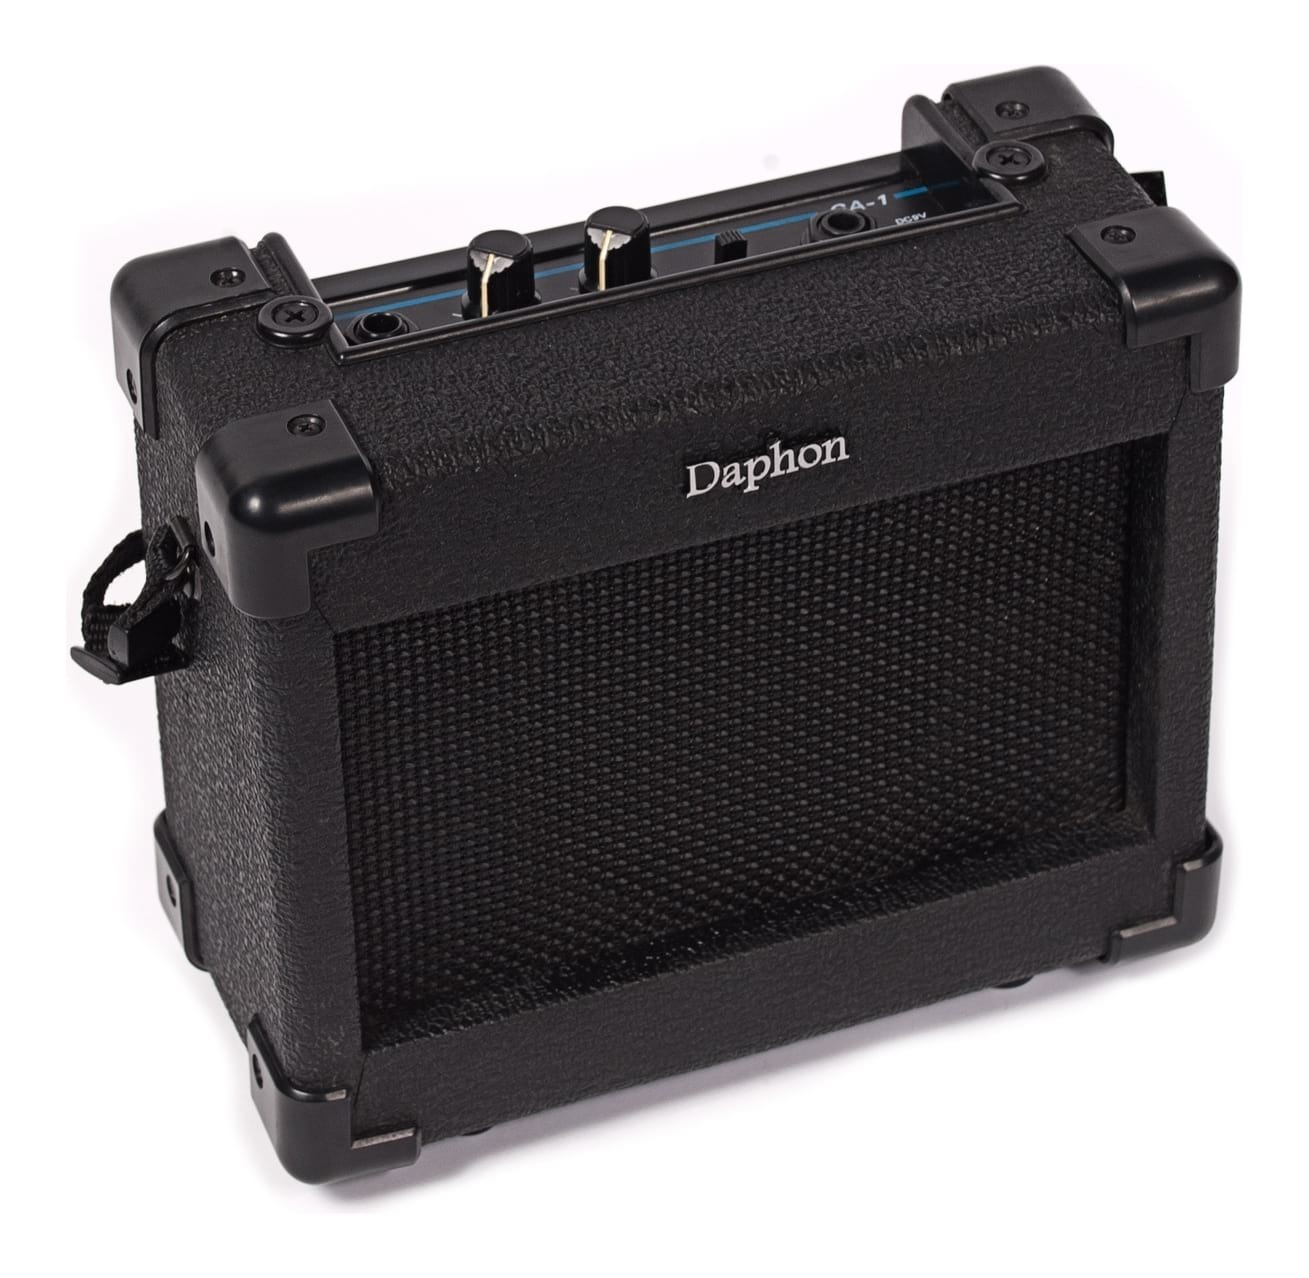 Daphon 5W Portable Battery Powered Guitar Amplifier